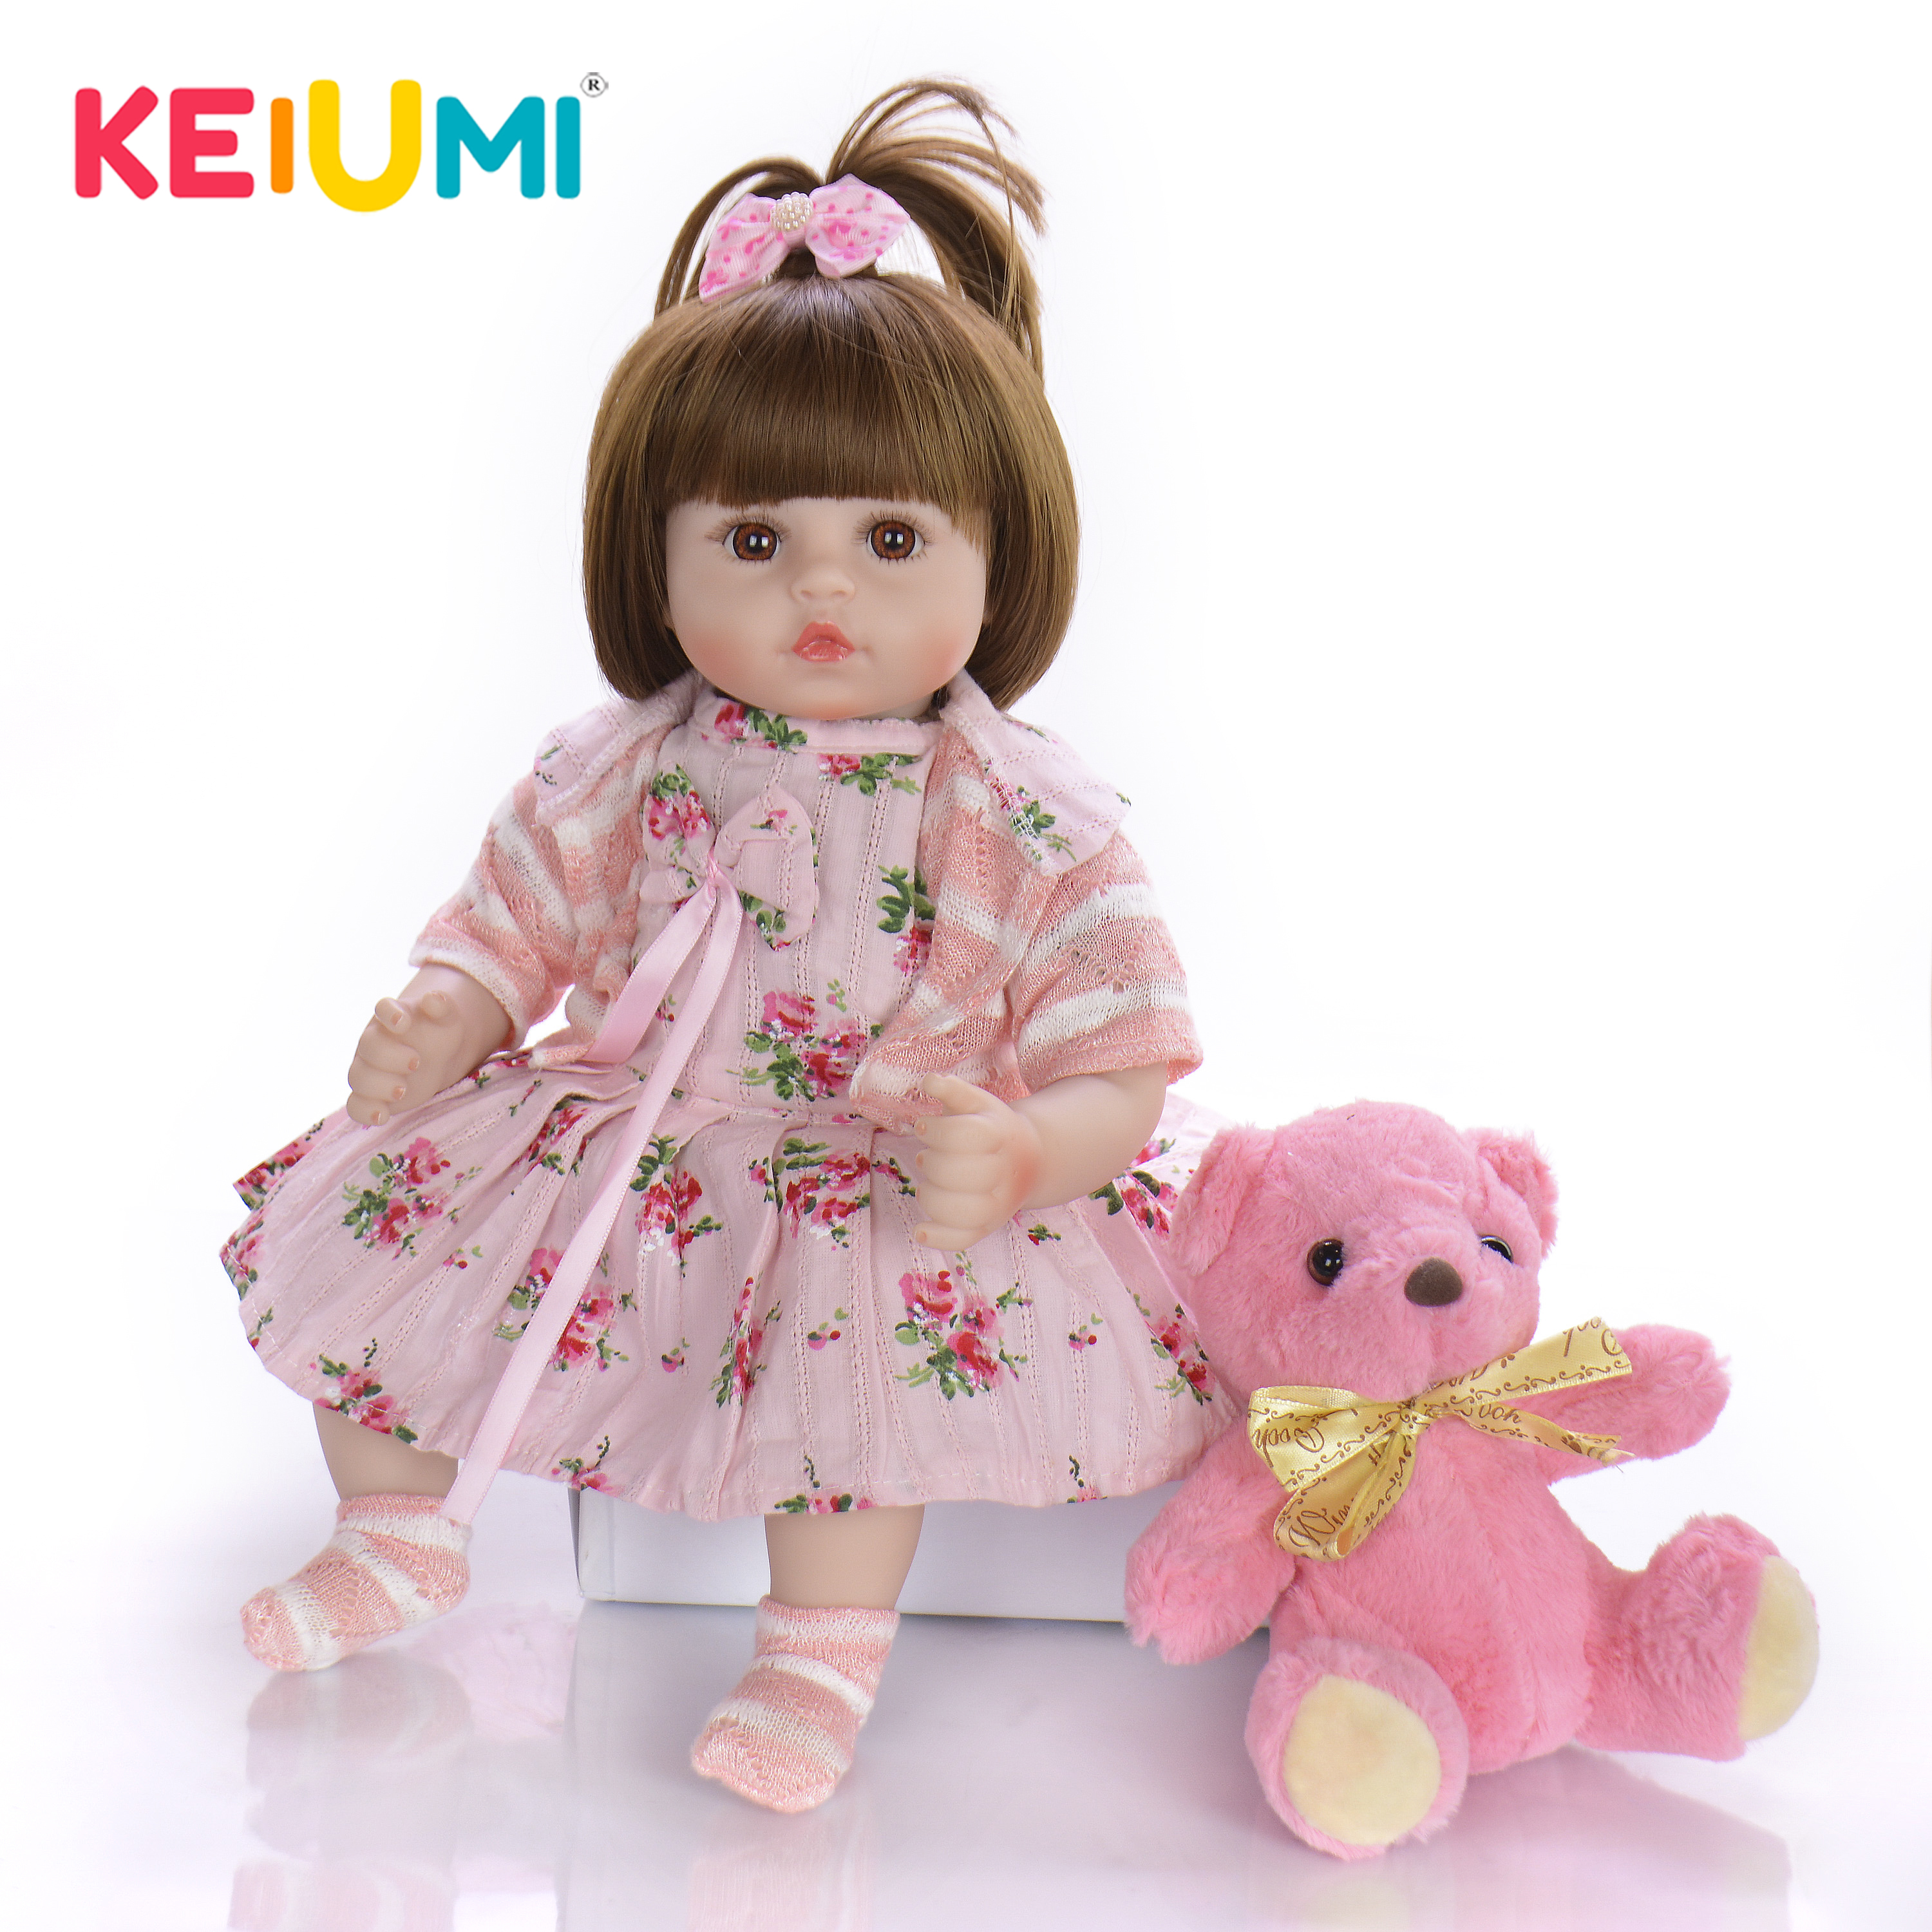 KEIUMI New Design 18 Inch Reborn Baby Lovely Girl Doll With Soft Silicone Vinyl 2019 Cute Baby Toy Doll For Childrens Day GiftsKEIUMI New Design 18 Inch Reborn Baby Lovely Girl Doll With Soft Silicone Vinyl 2019 Cute Baby Toy Doll For Childrens Day Gifts